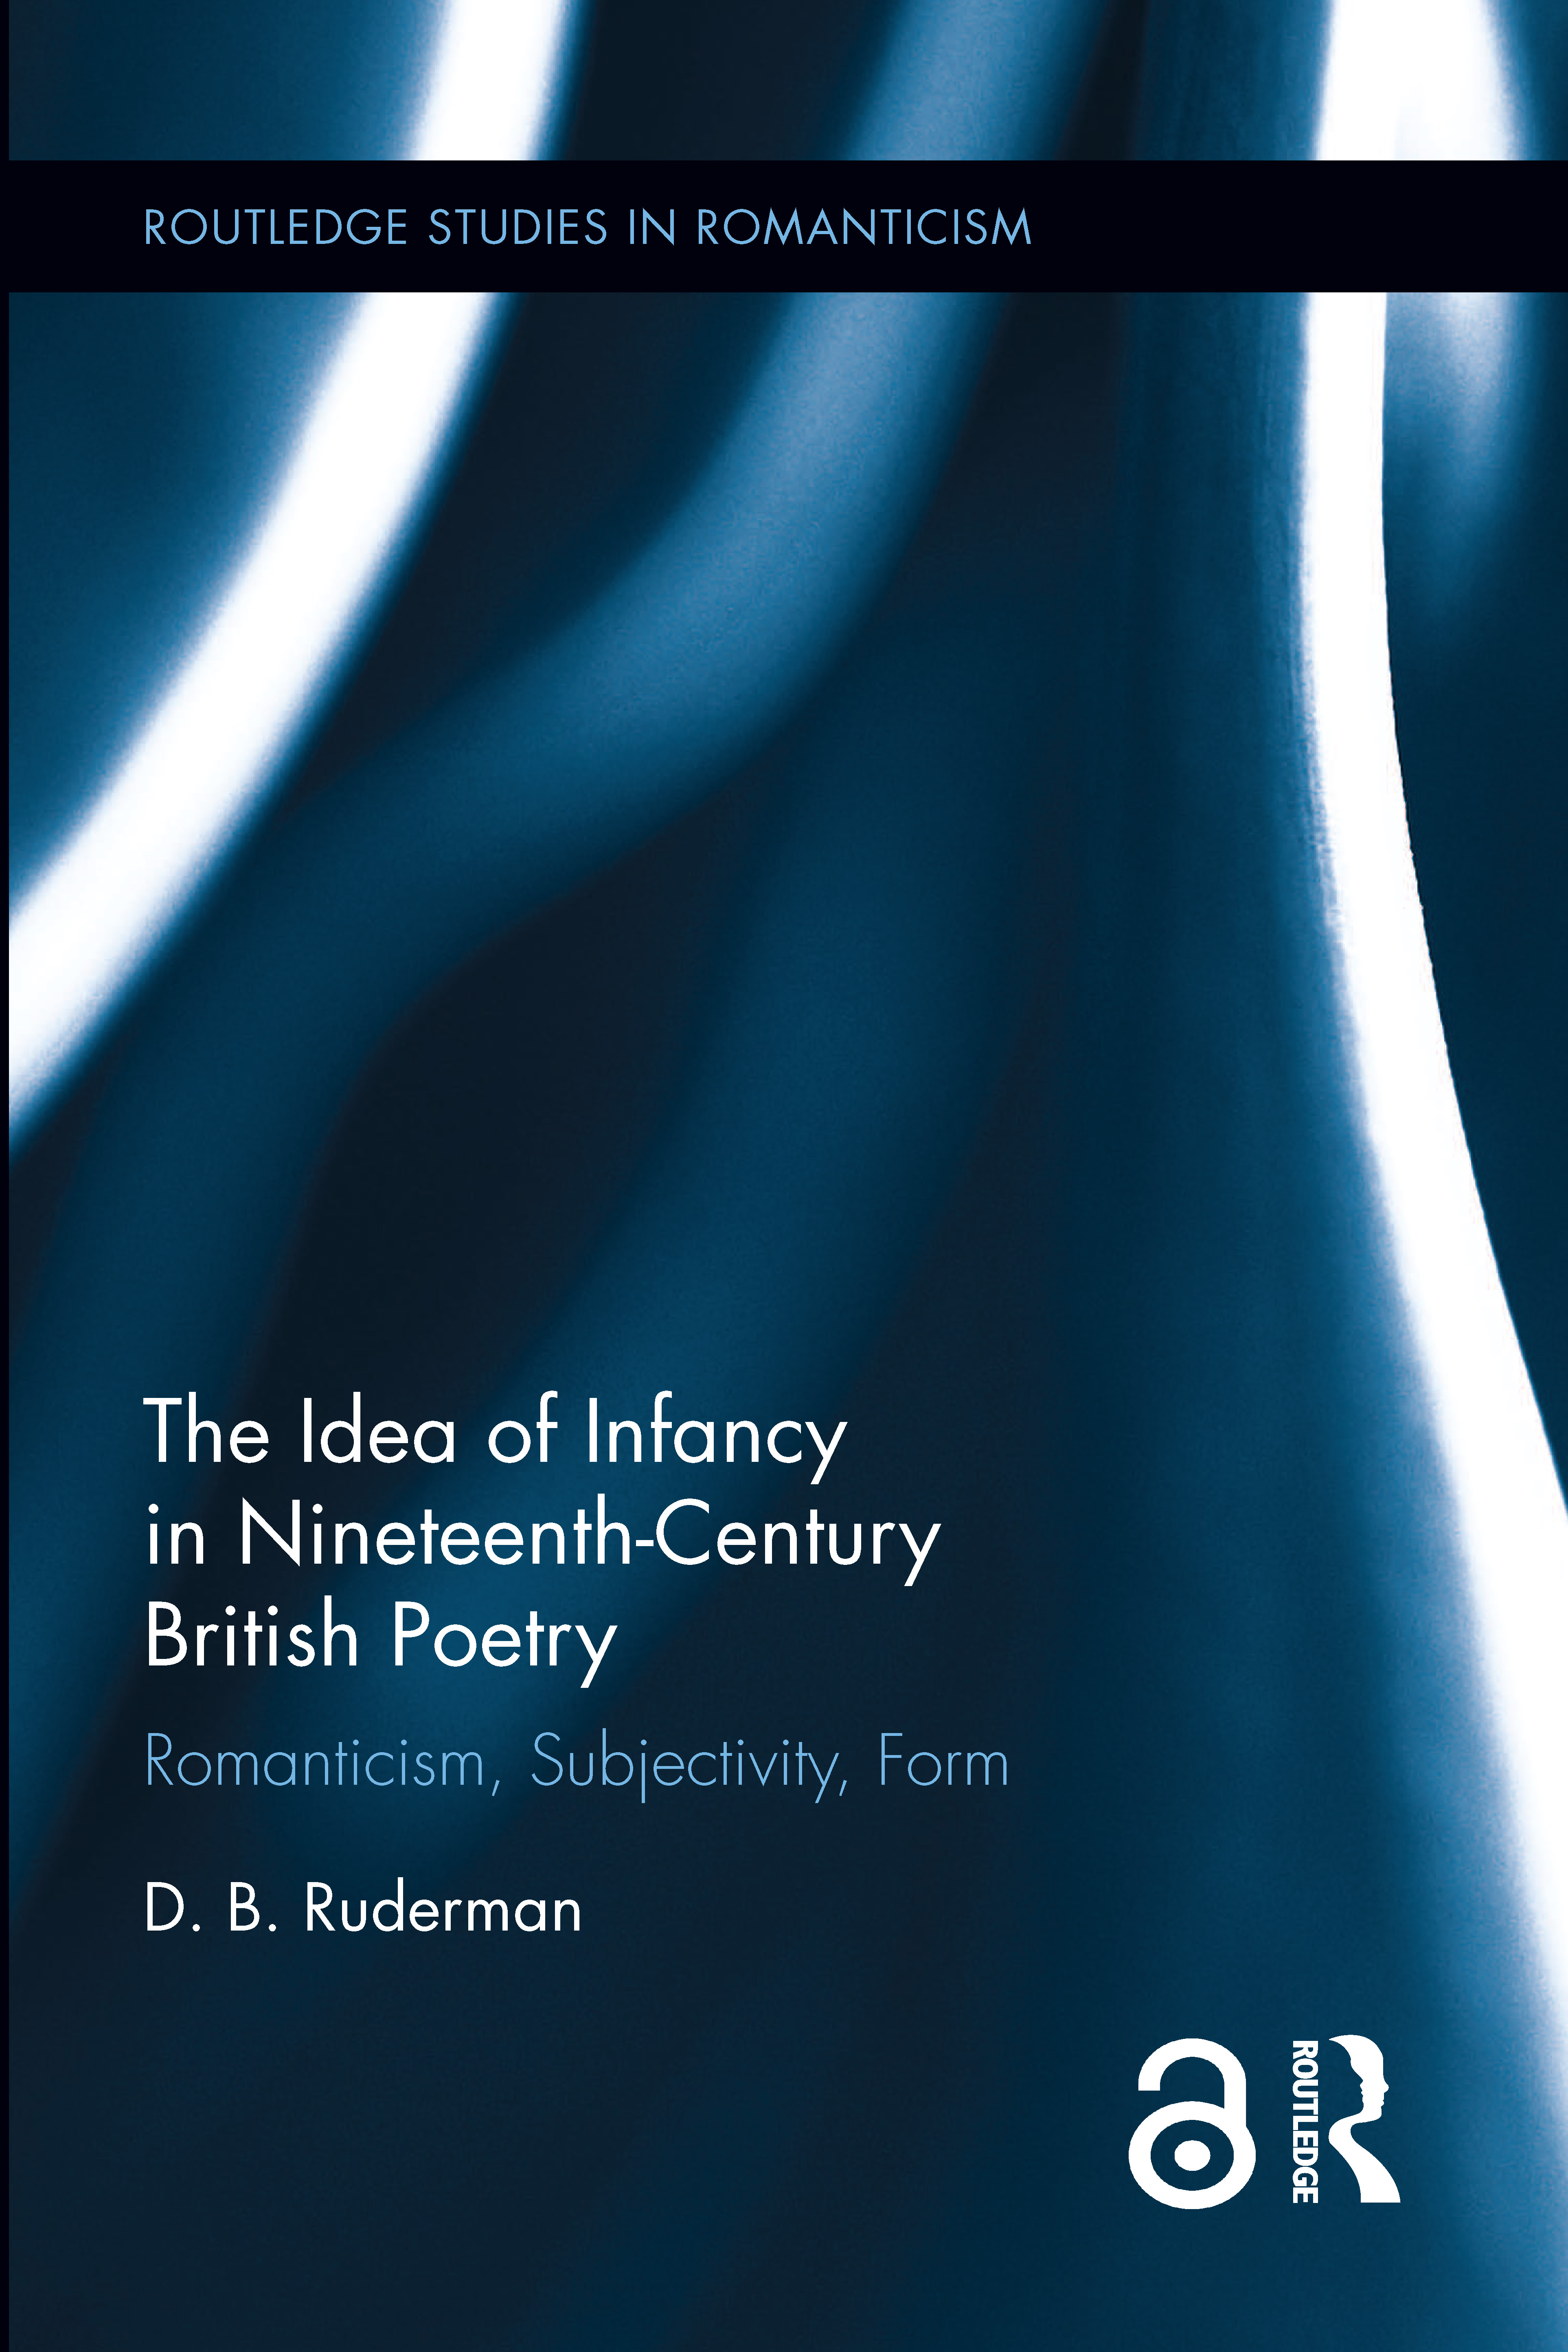 The Idea of Infancy in Nineteenth-Century British Poetry: Romanticism, Subjectivity, Form, 1st Edition (Hardback) book cover